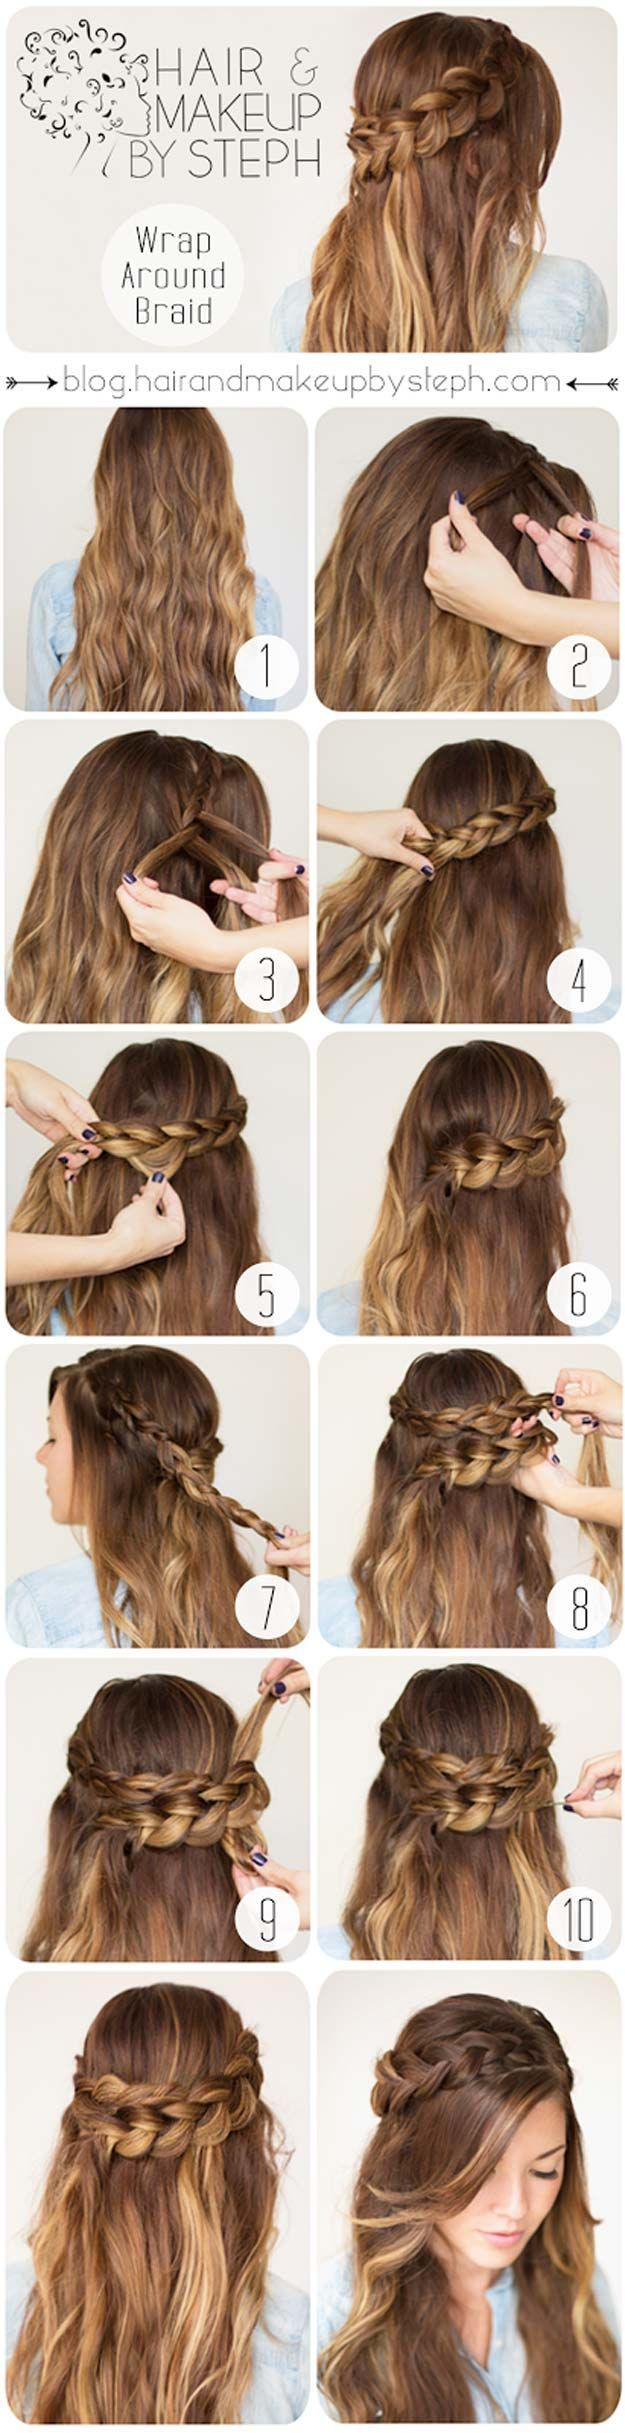 Easy Hairstyles for Work - Wrap Around Braid - Quick and Easy Hairstyles For The...